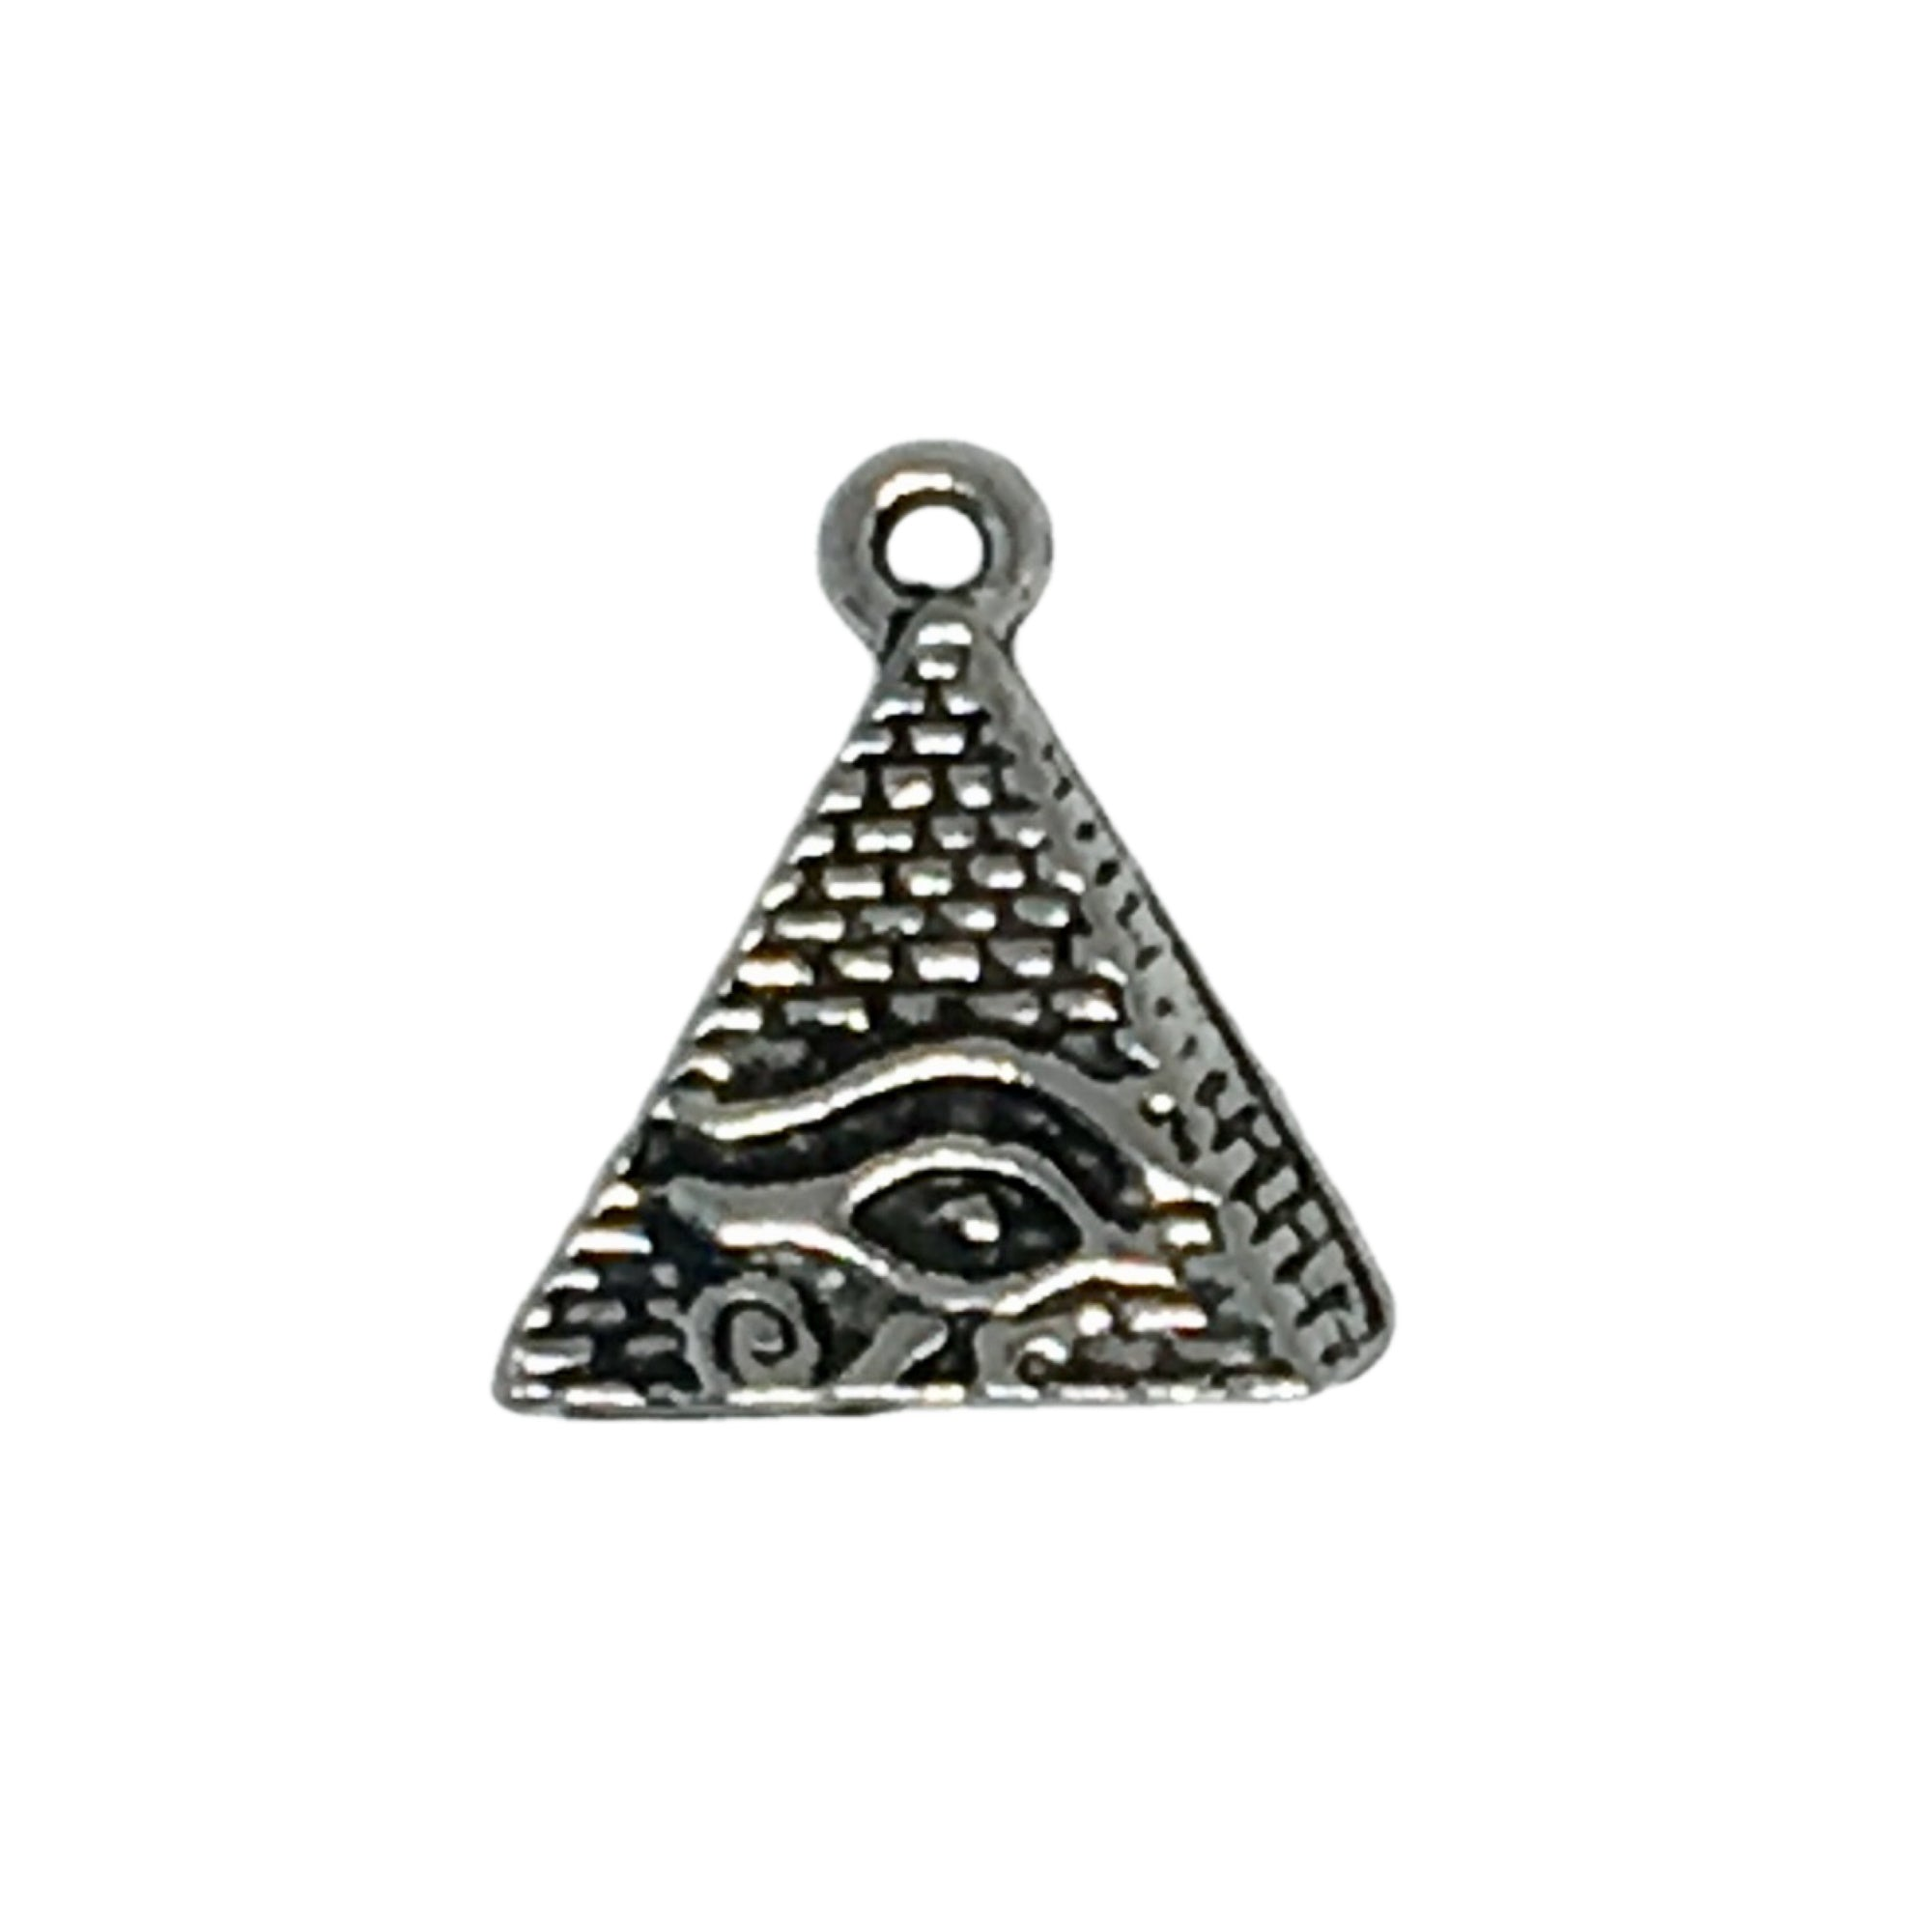 Eye of Horus Pyramid Charms - Qty of 5 Charms - Lead Free Pewter Silver - American Made